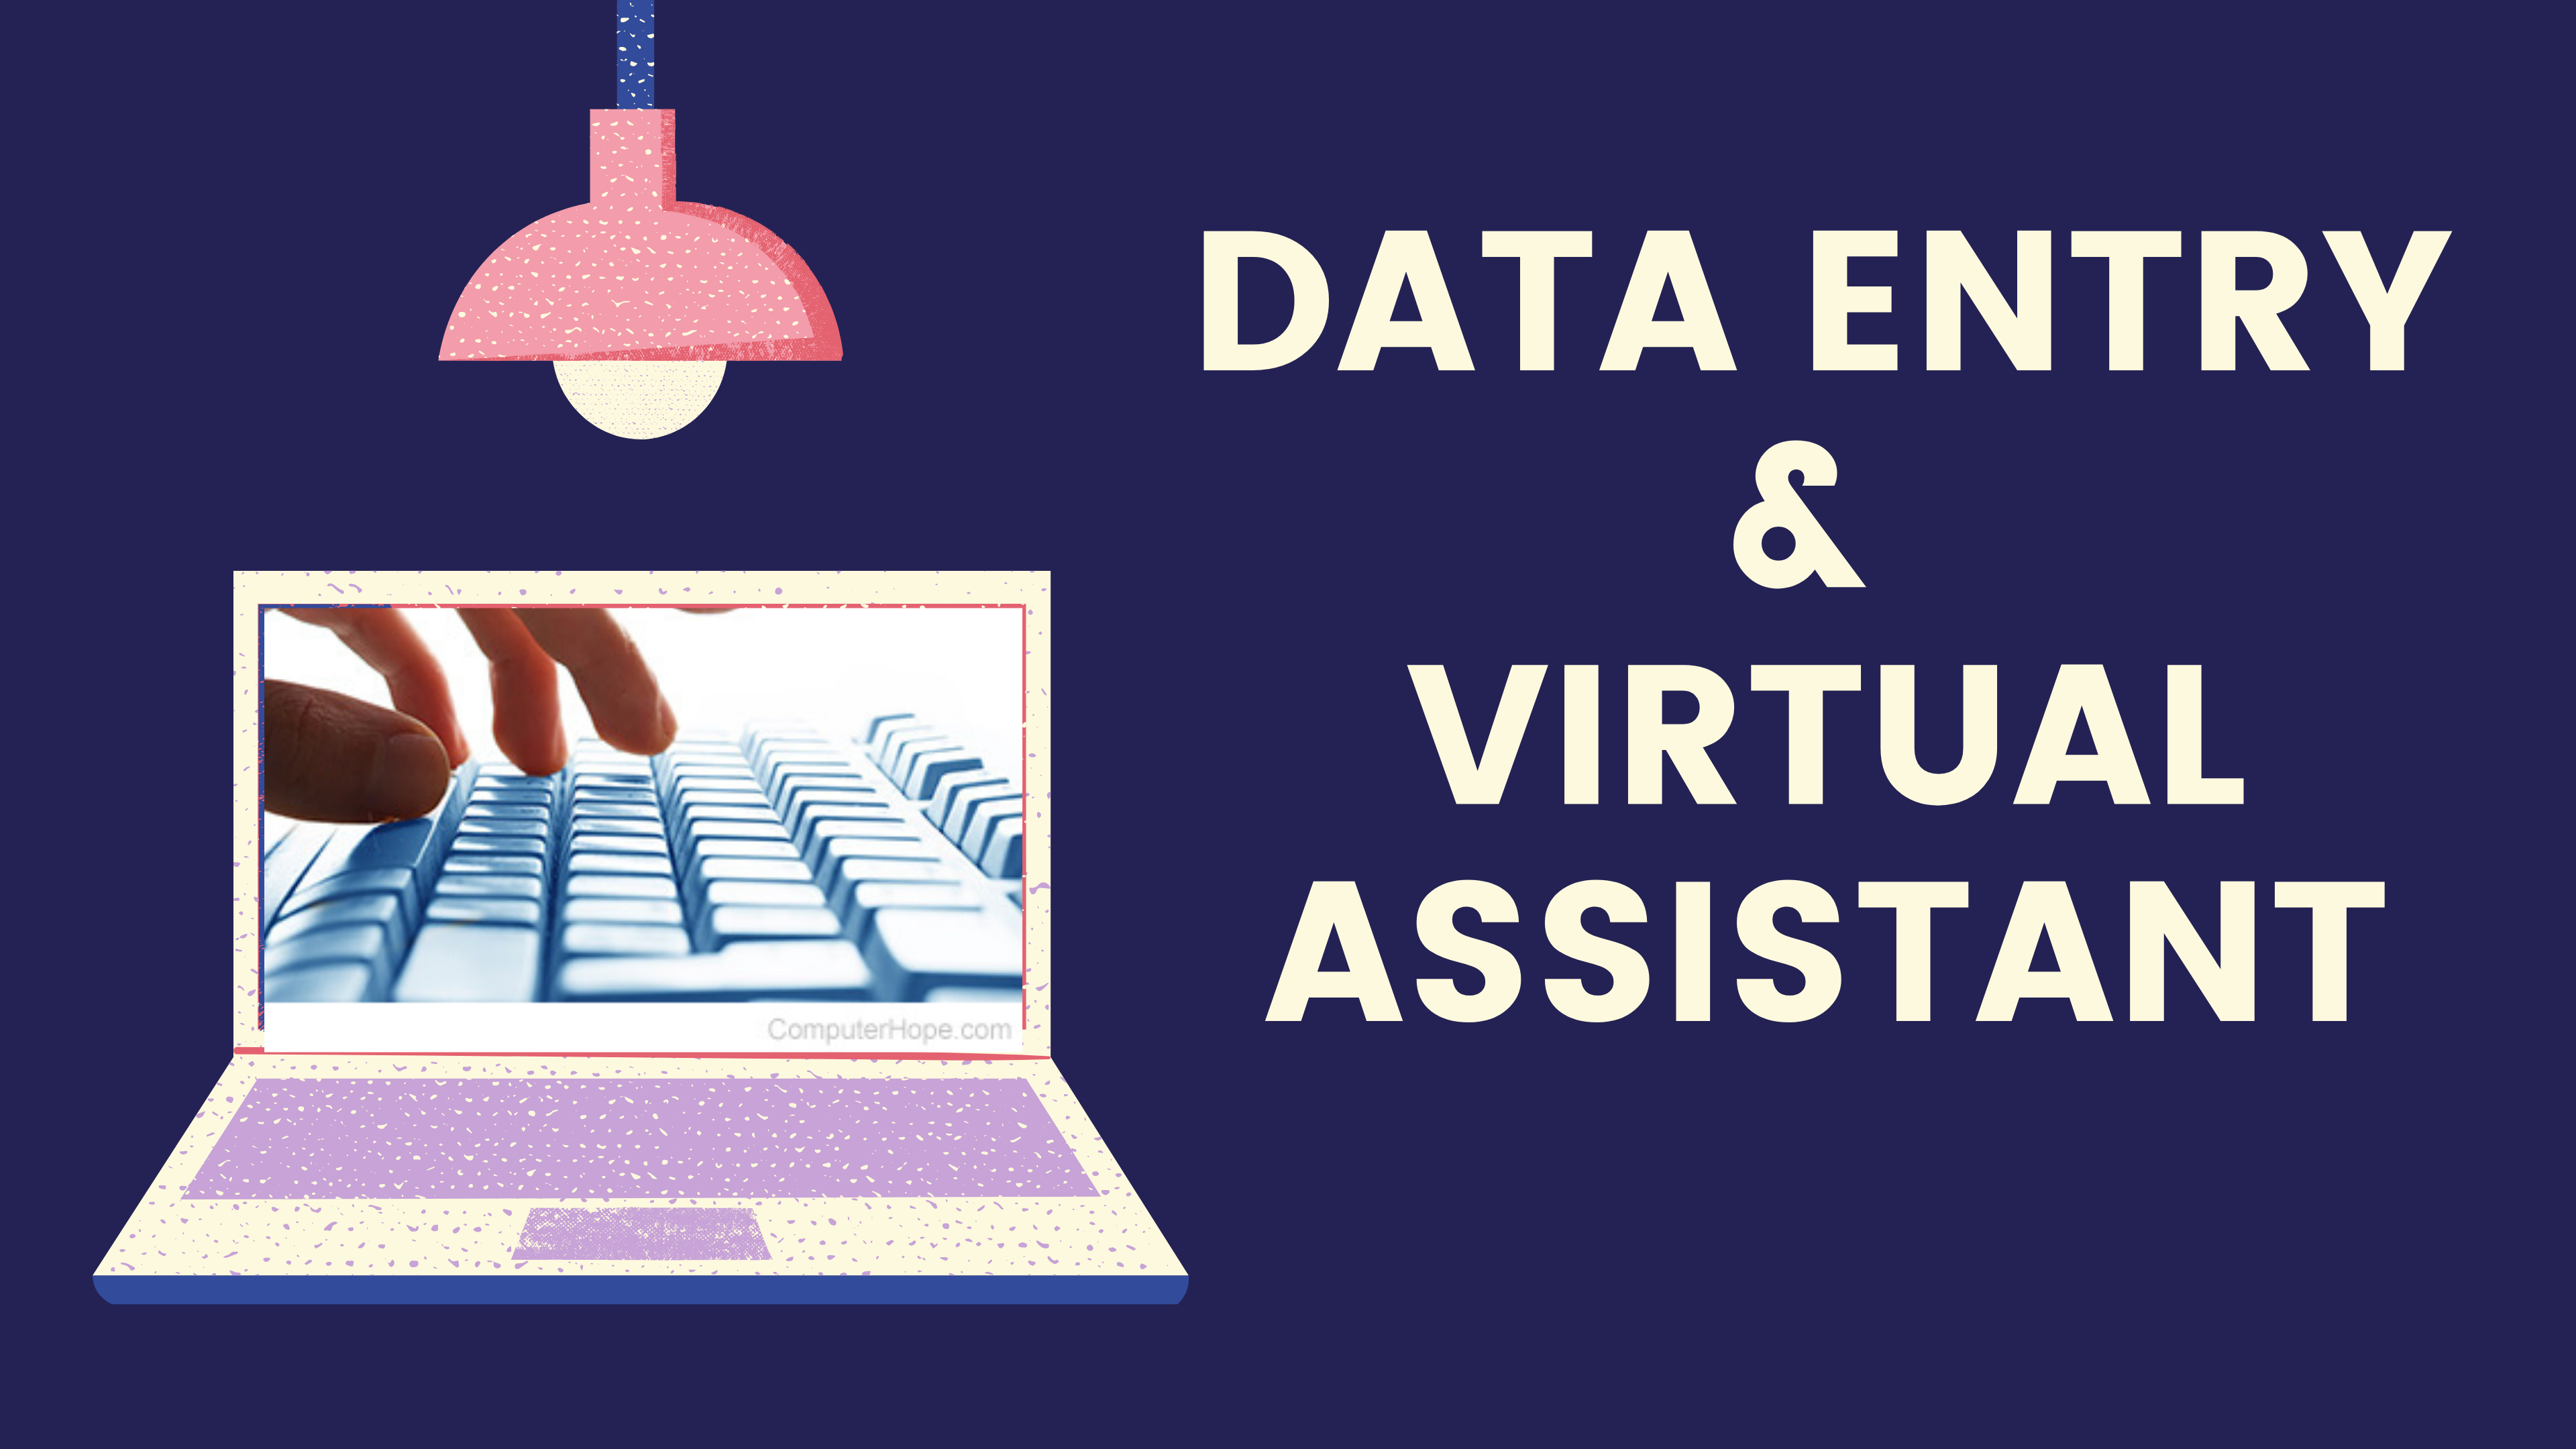 I will do any kind of data entry and will be your virtual assistant